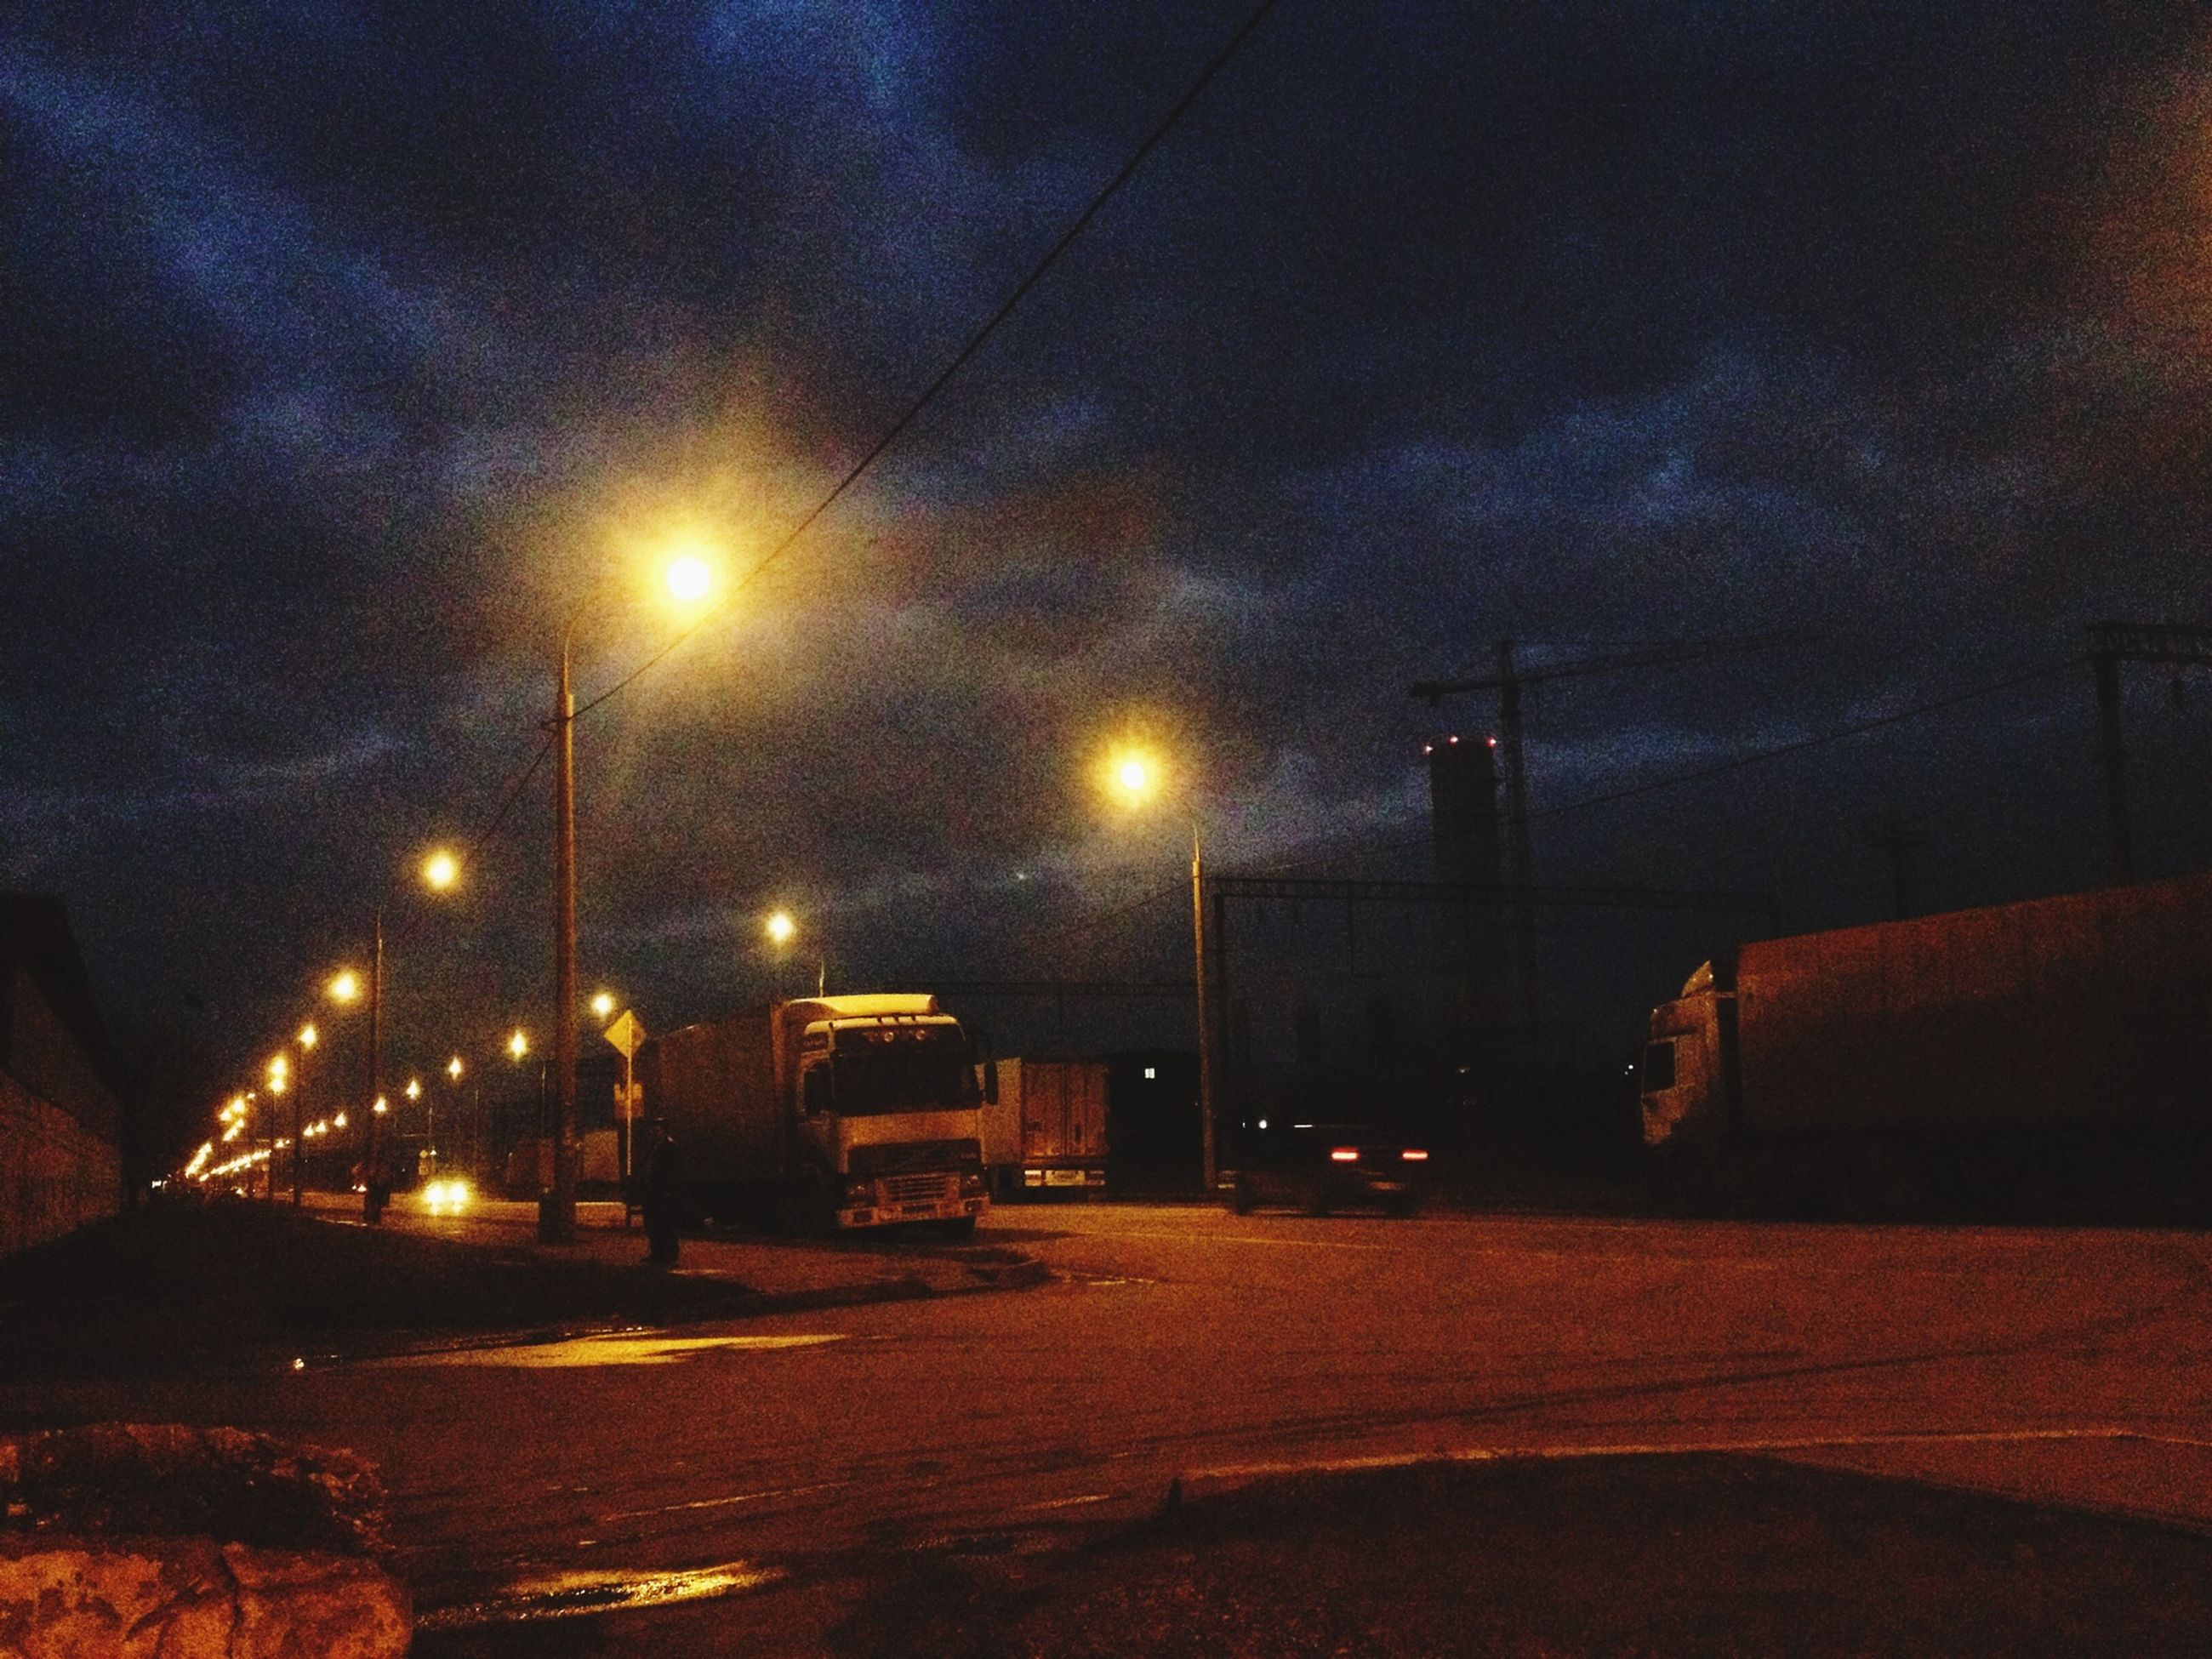 illuminated, street light, night, transportation, street, road, sky, lighting equipment, car, the way forward, land vehicle, built structure, architecture, building exterior, weather, mode of transport, cloud - sky, dusk, empty, outdoors